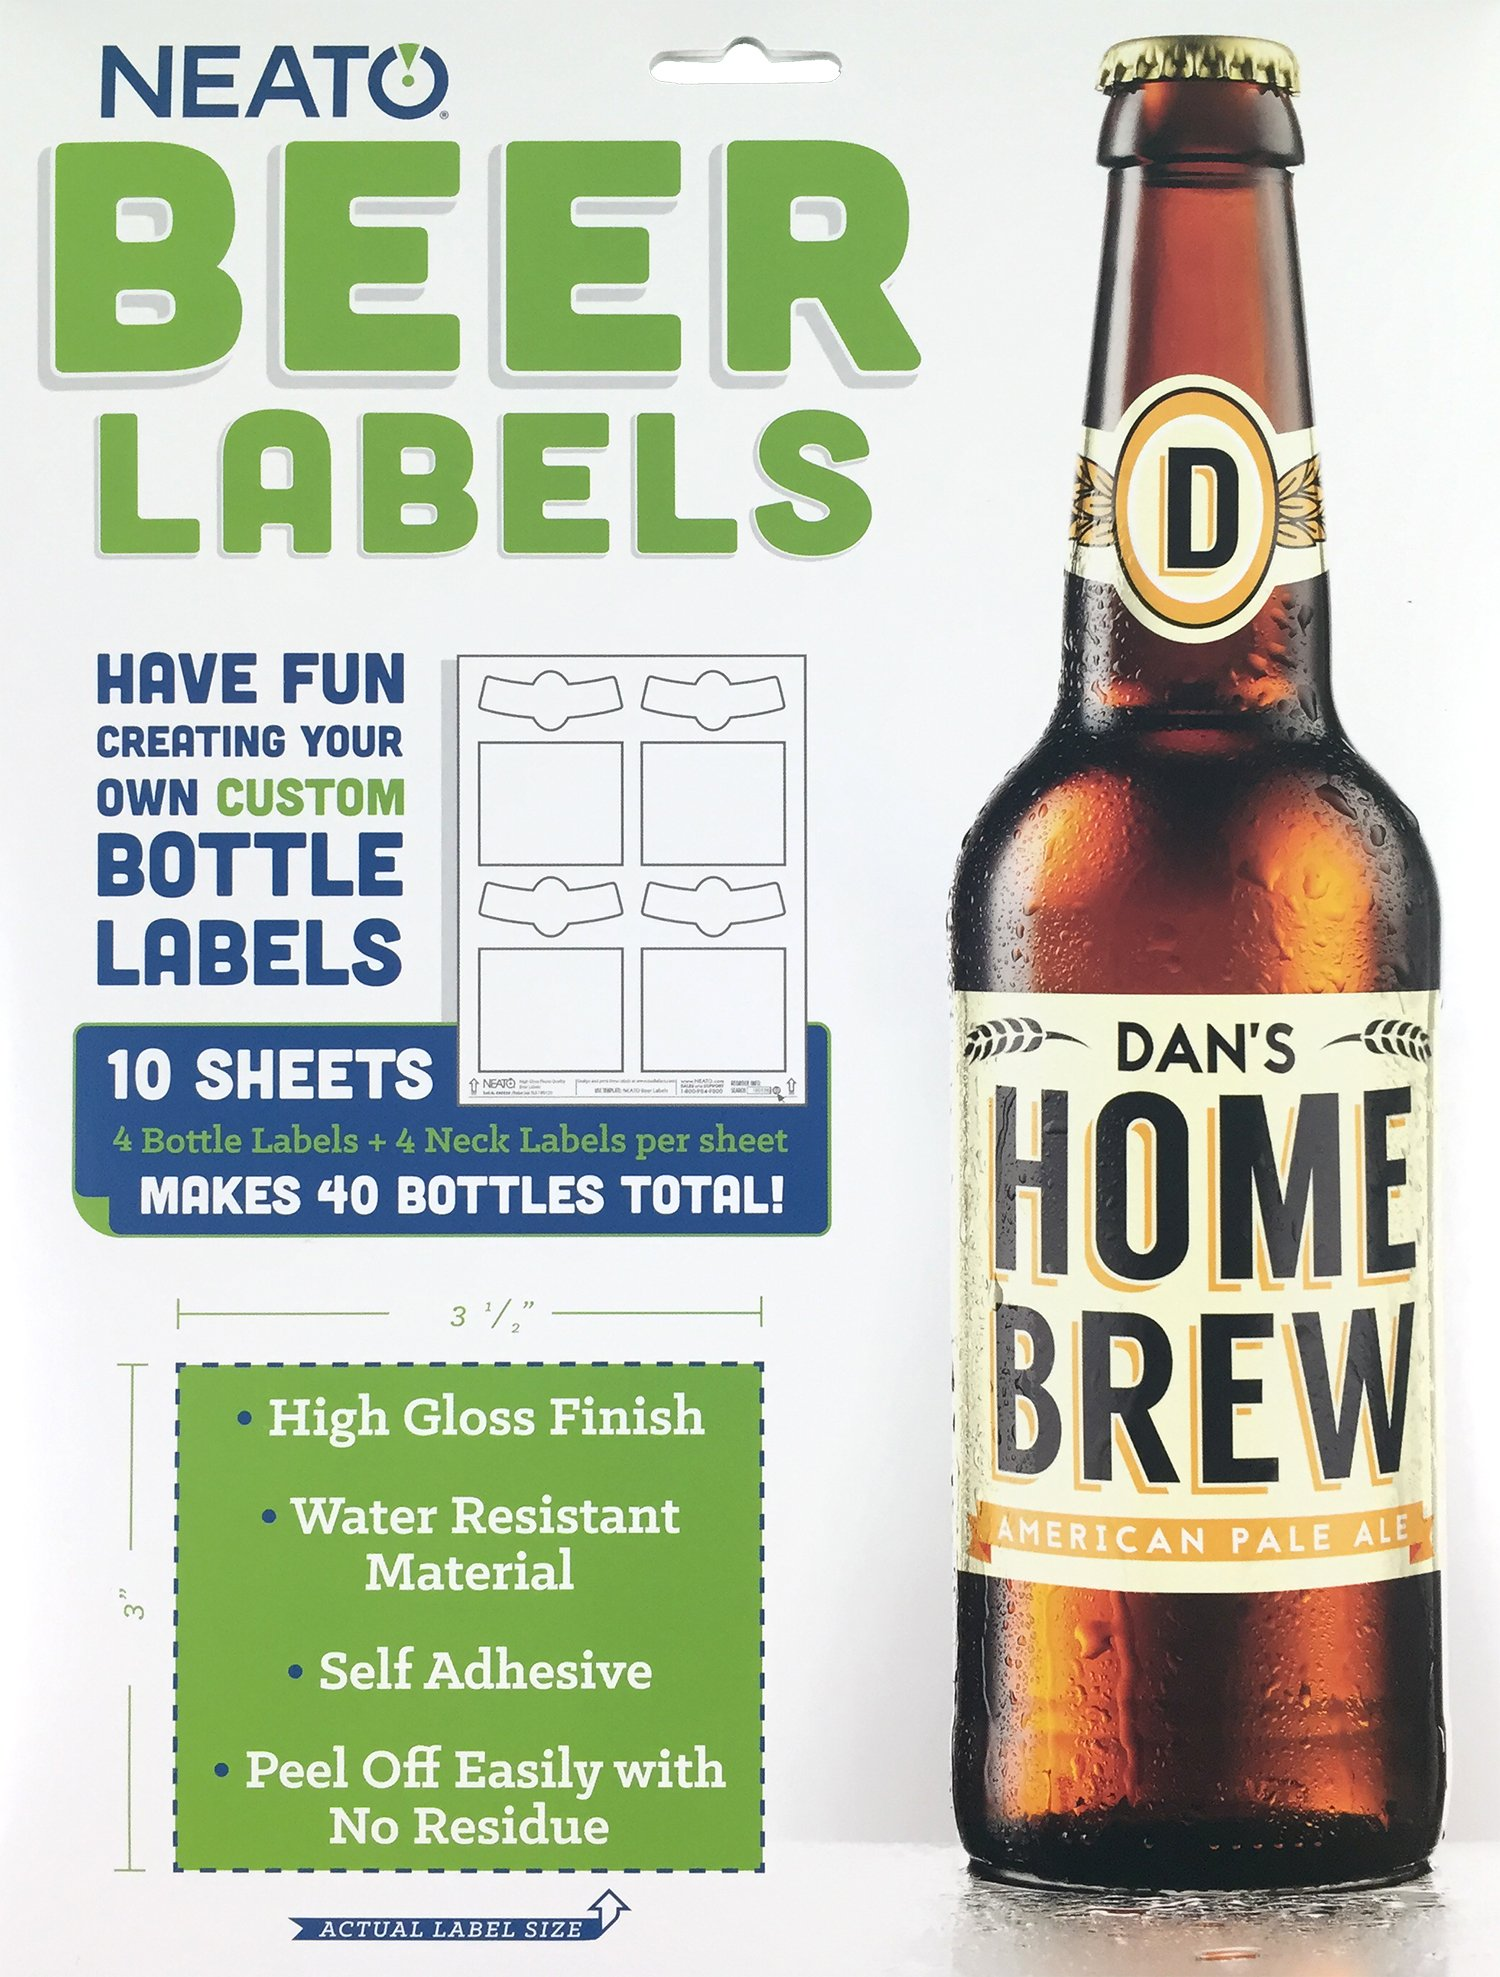 Neato Blank Beer Bottle Labels - 40 pack - Water Resistant, Vinyl, For InkJet Printers by Neato